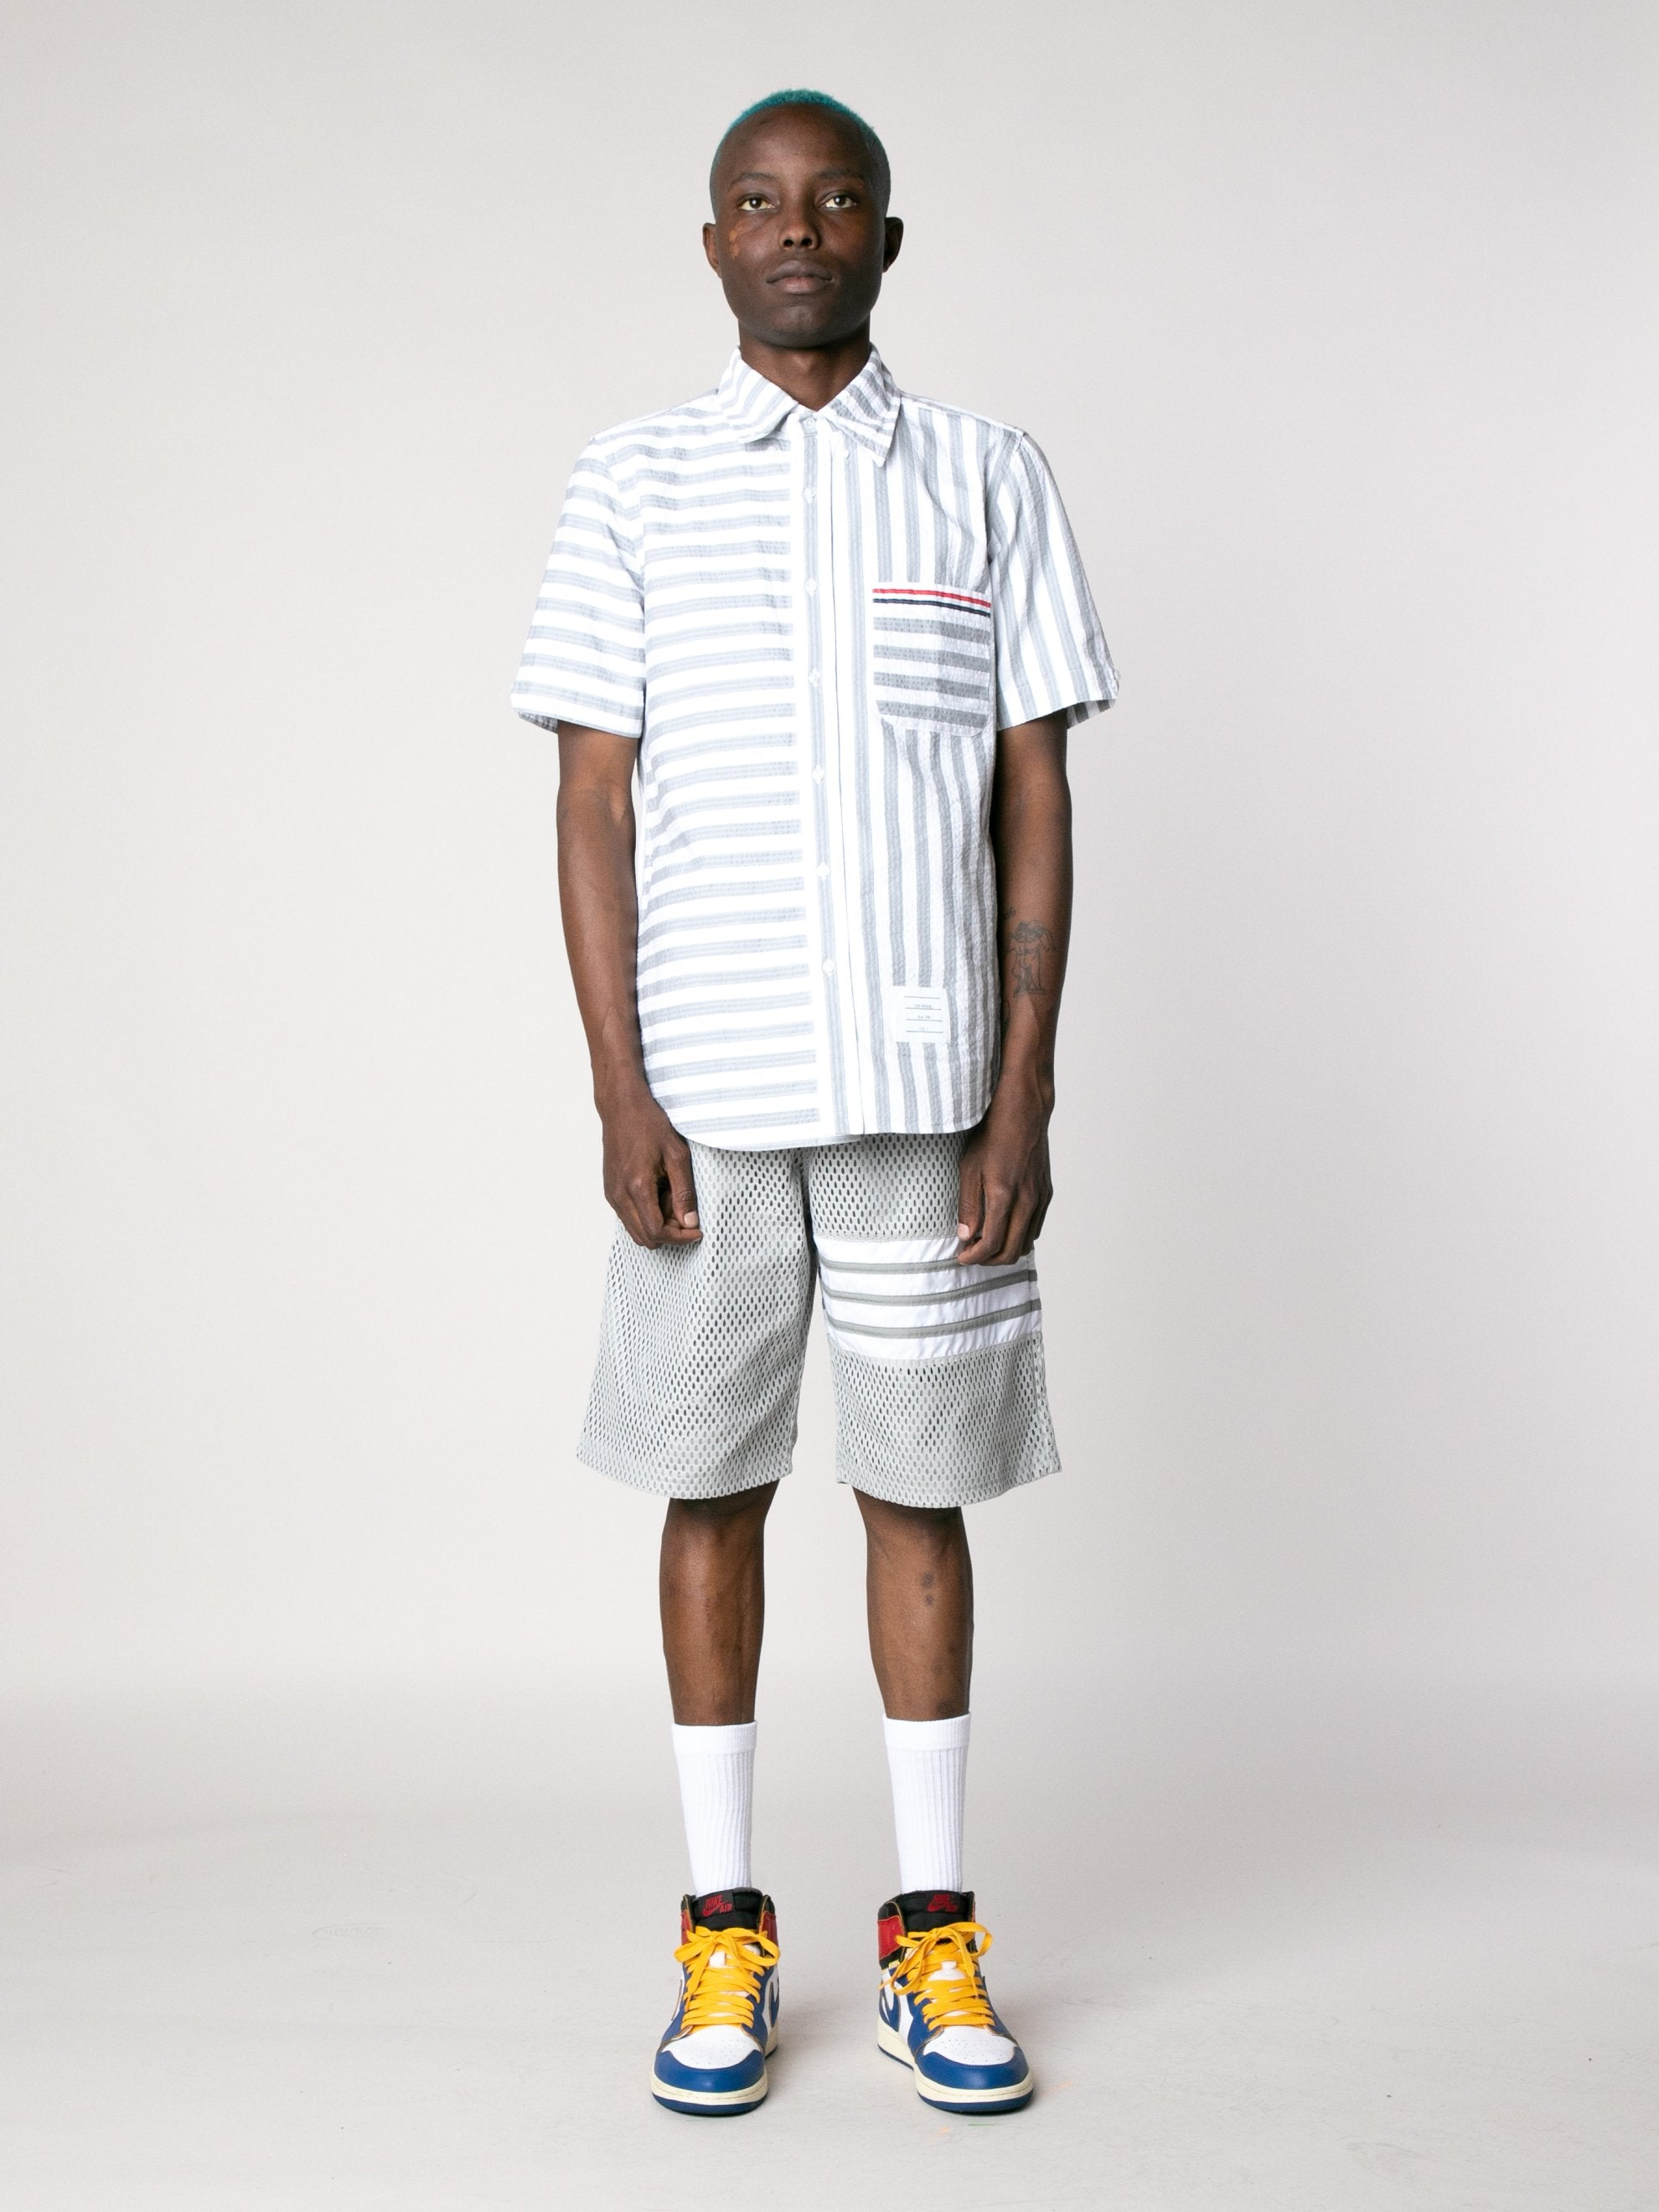 Med Grey Straight Fit Button Down Short Sleeve Shirt In Engineered RWB Wide Universty Stripe Shirt Seersucker 3